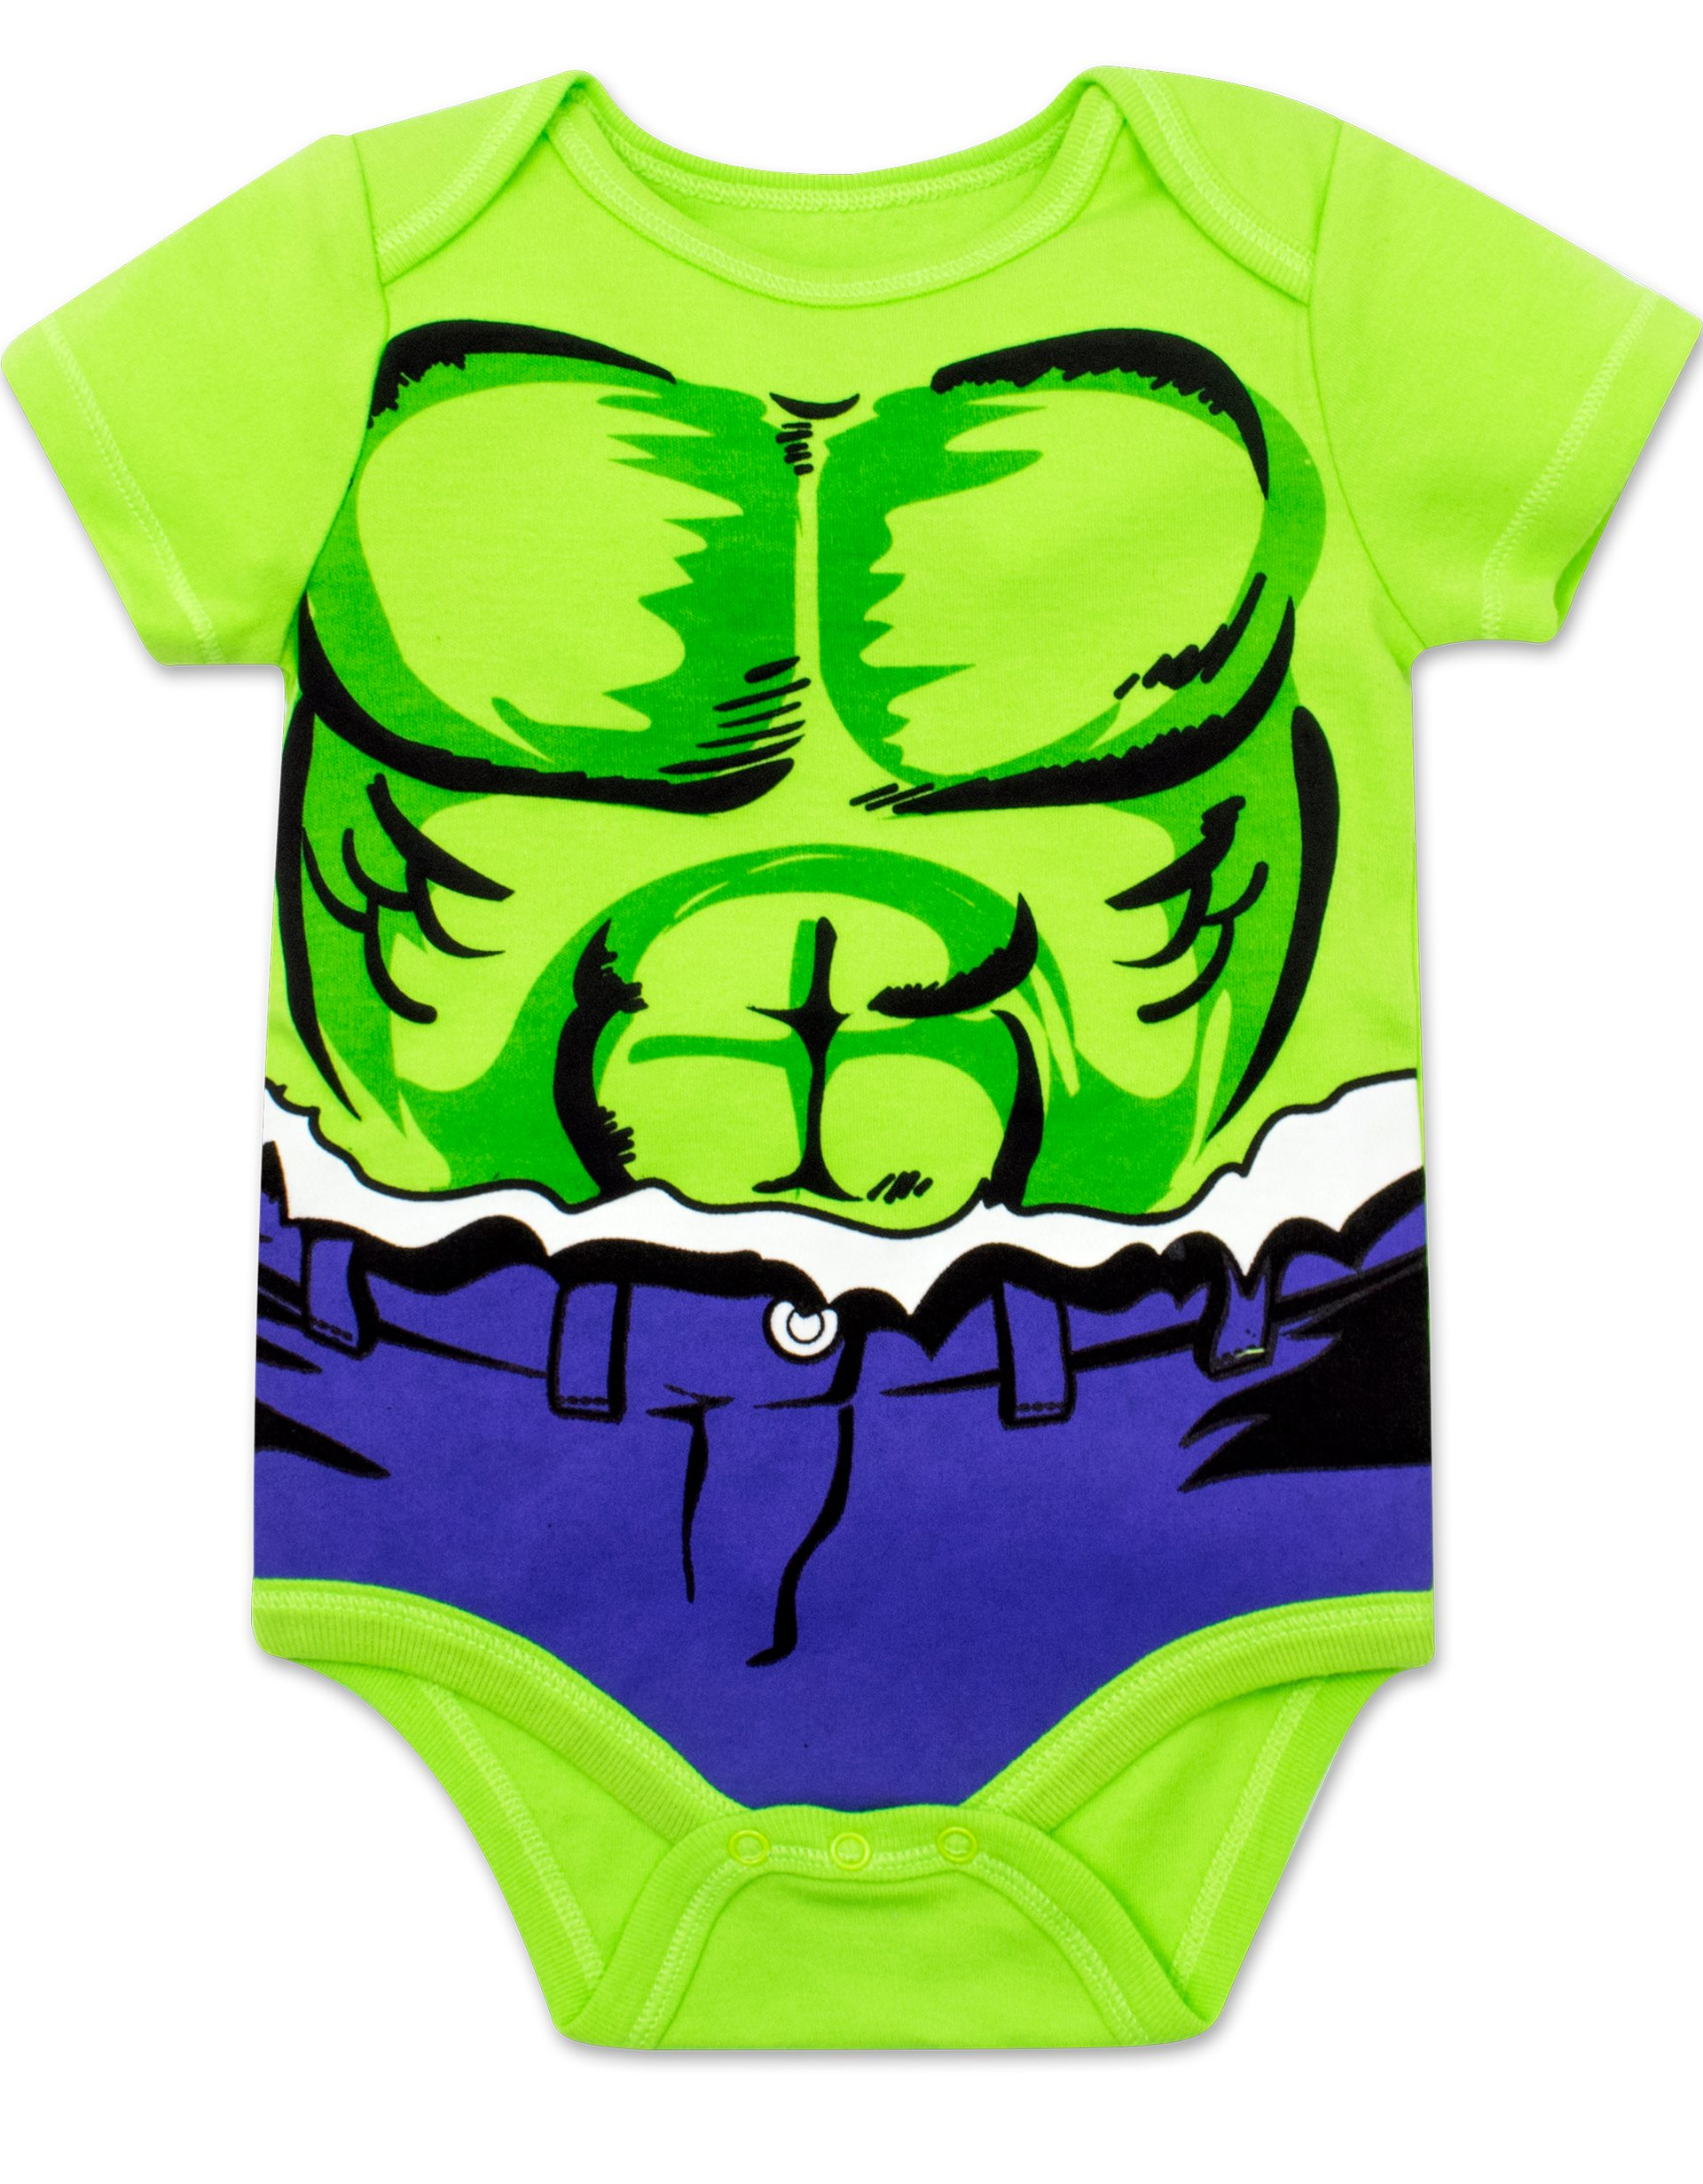 Marvel Baby Boys' 5 Pack Onesies - The Hulk, Spiderman, Iron Man and Captain America (3-6 Months) by Marvel (Image #2)